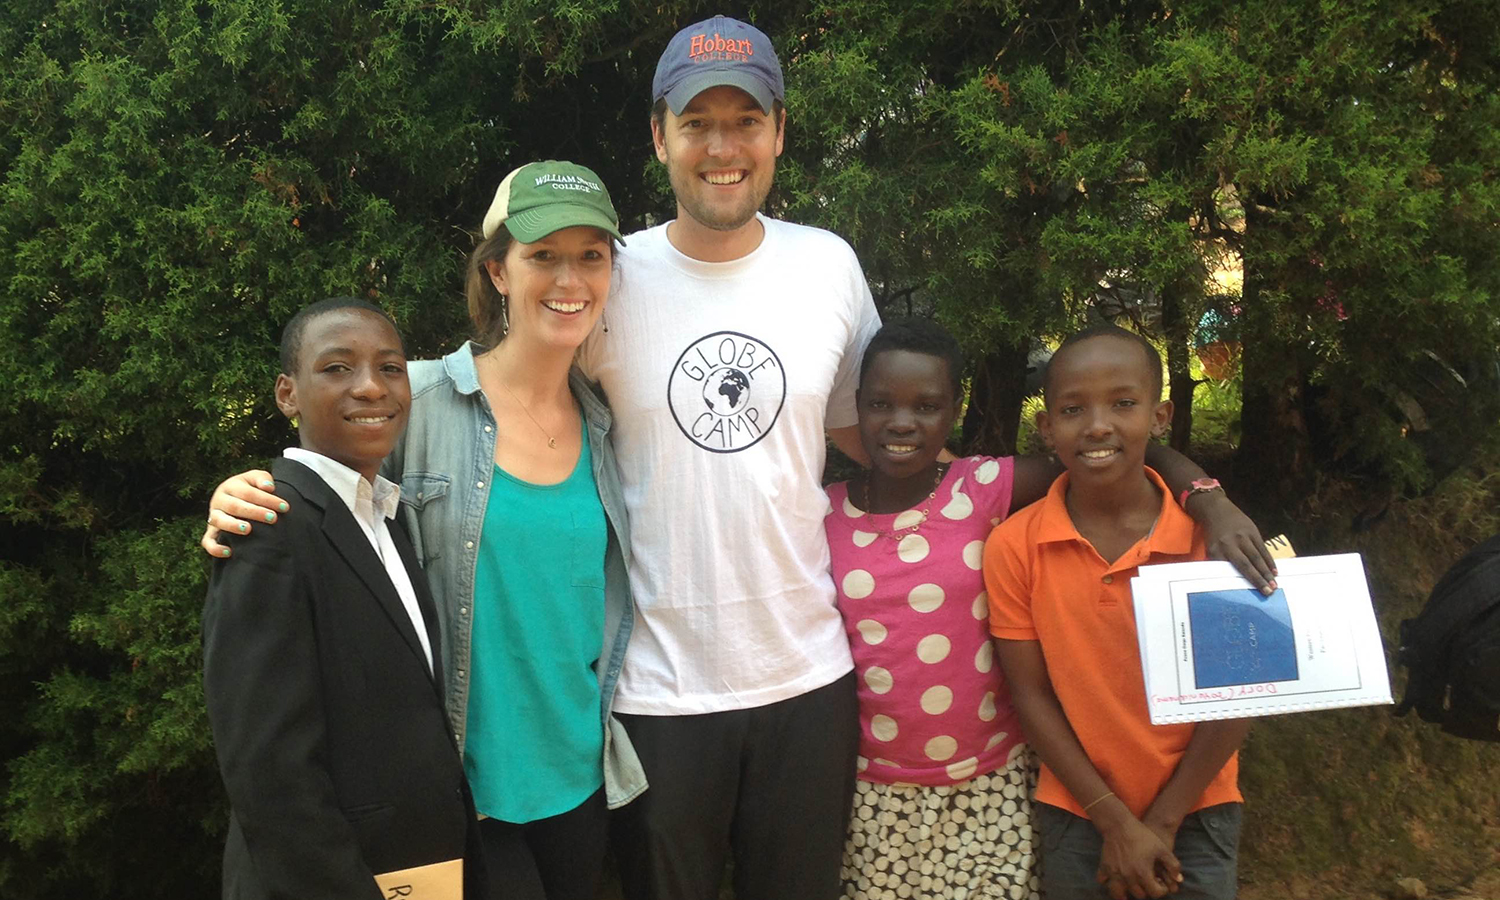 Serving in Rwanda as TEFL Peace Corps Volunteers, Nicolas Walker H'13 and Anna Dorman '14 helped facilitate a health and empowerment camp for secondary students in the Western Province.